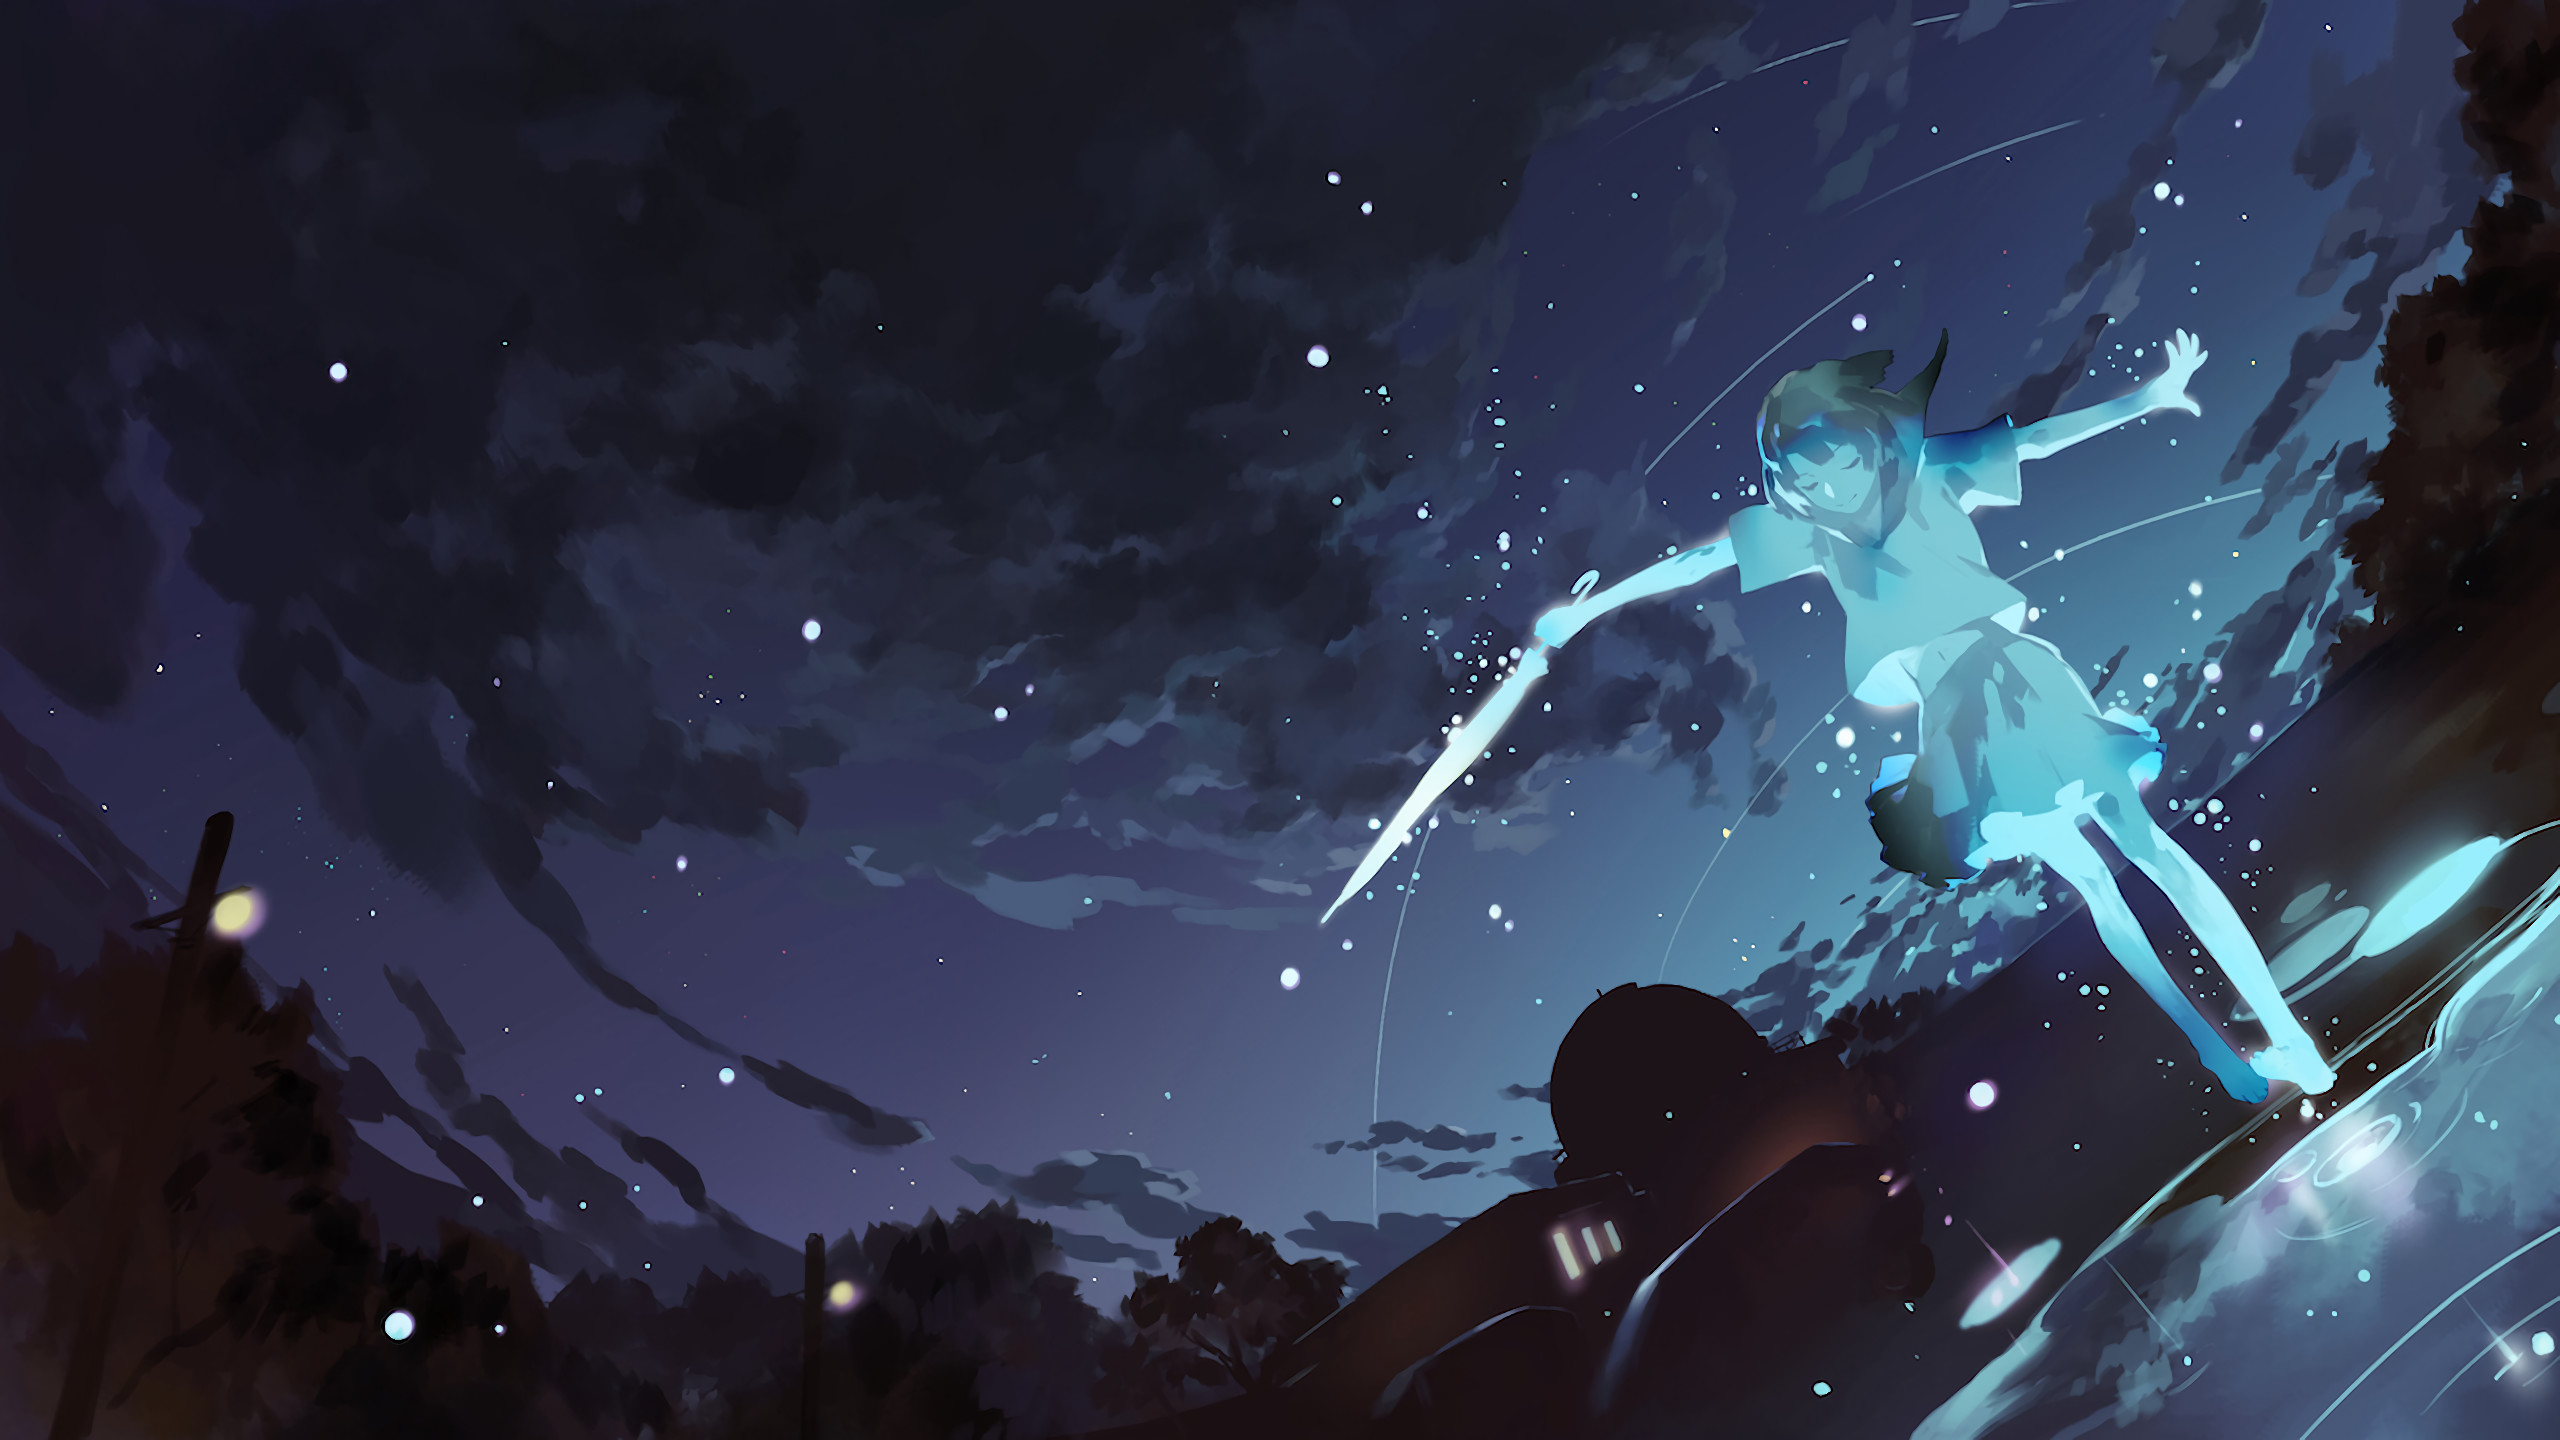 [Request] 5120×1440 of this background, please?